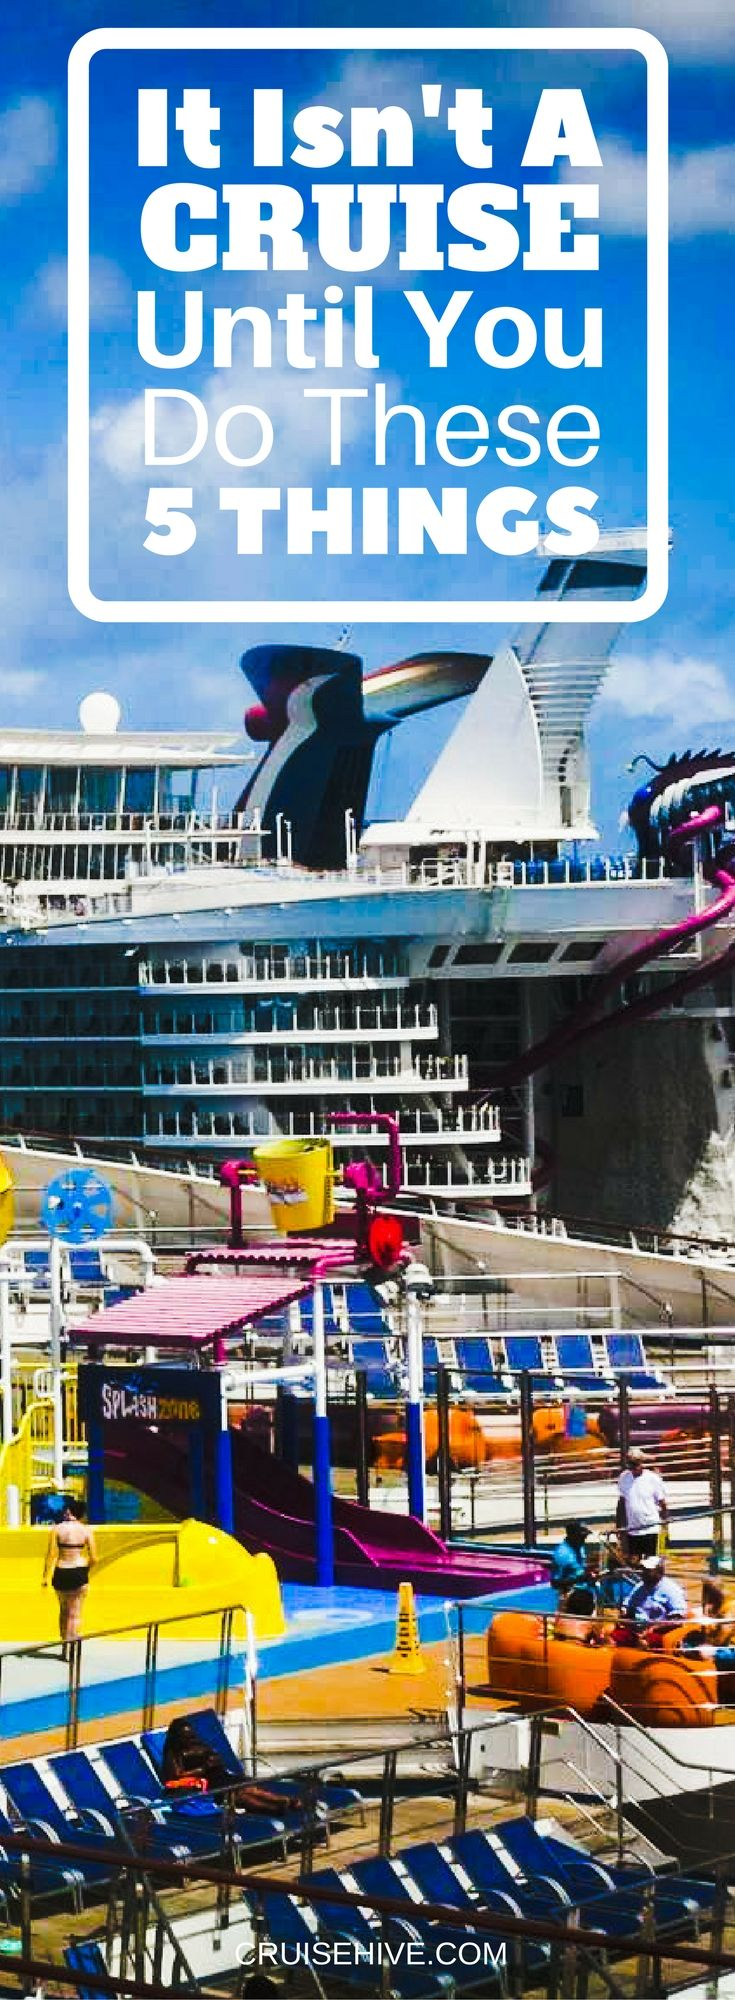 These five things we're looking at have been part of cruising since the beginning, it isn't a cruise until you actually complete all of these!